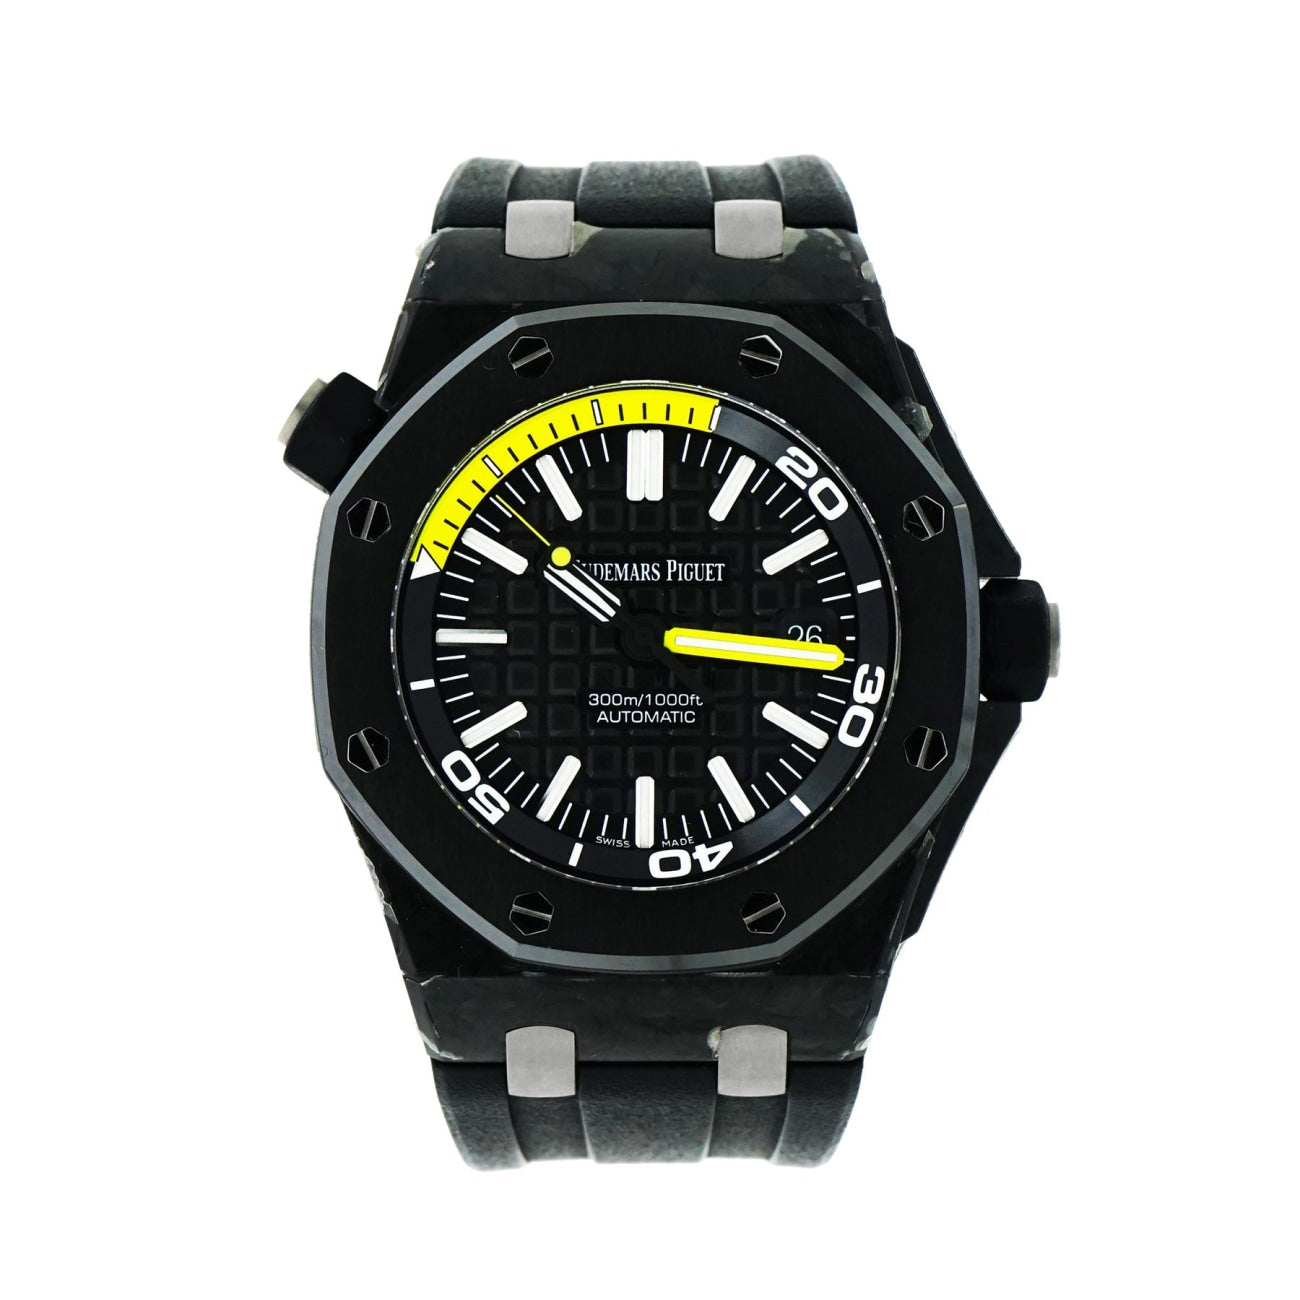 Pre-Owned Audemars Piguet Pre-Owned Watches - Royal Oak Offshore Diver | Manfredi Jewels